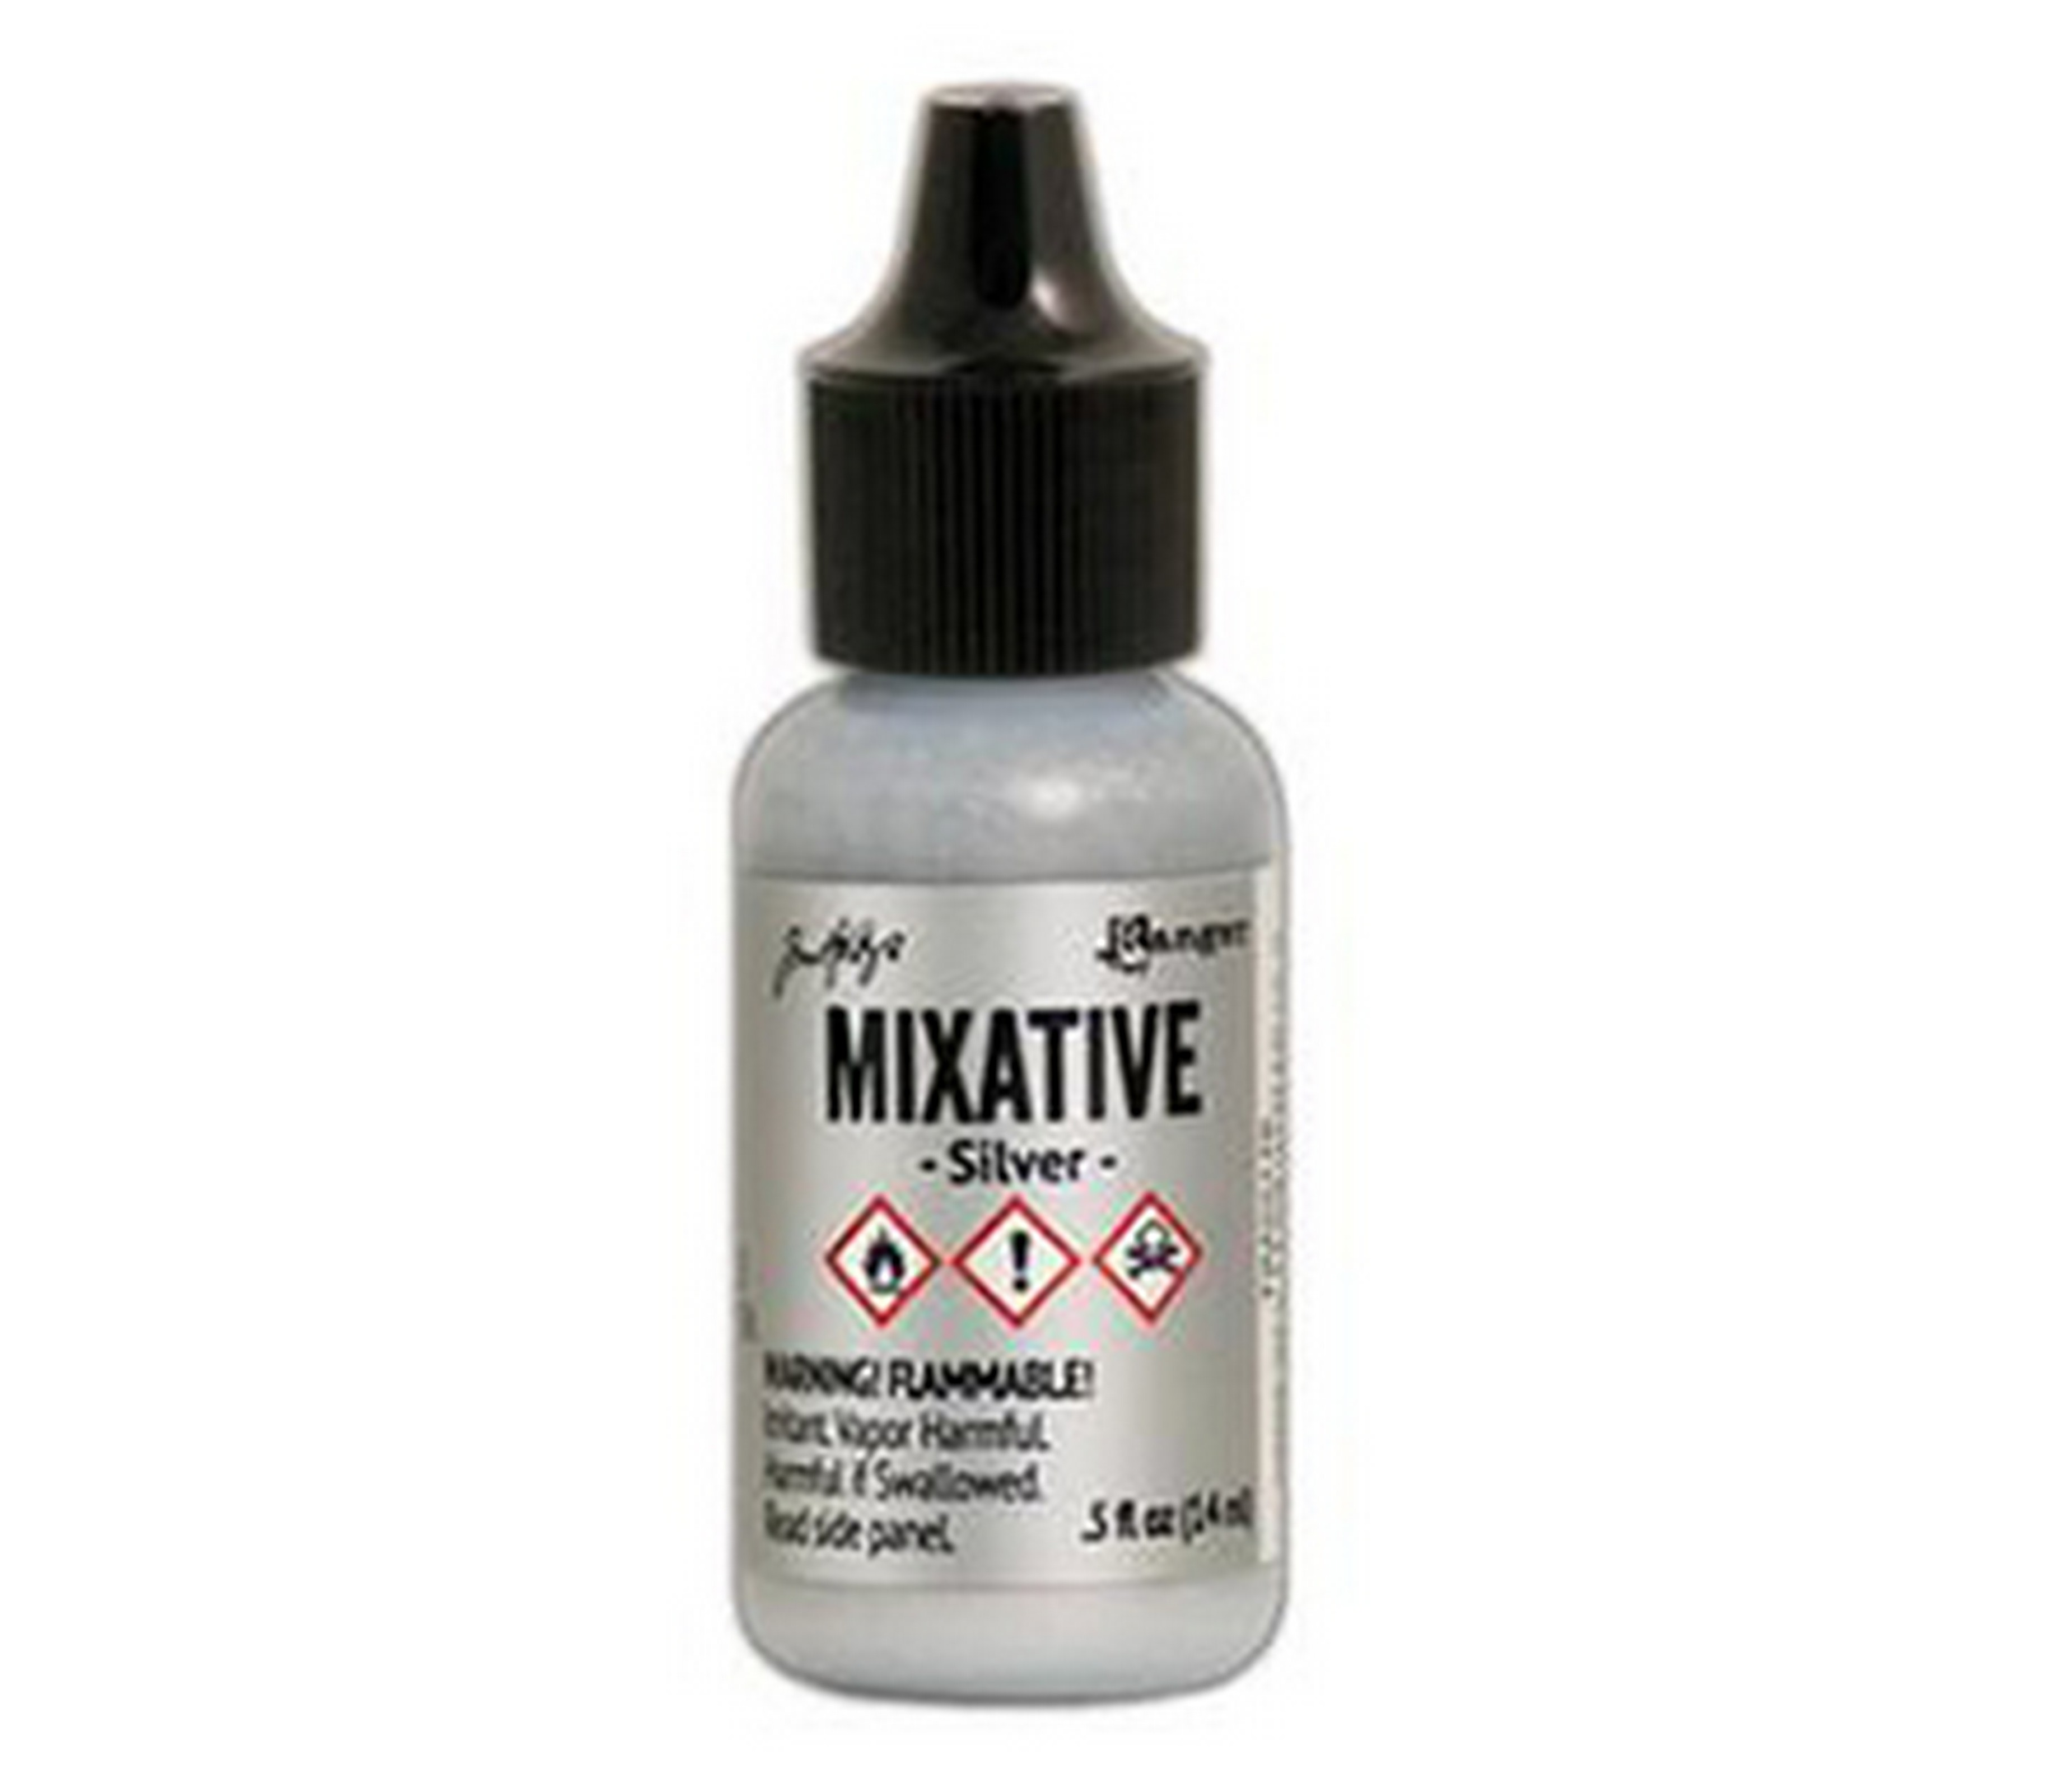 (74705) METALLIX MIXATIVE SILVER 0.5OZ - ORMD